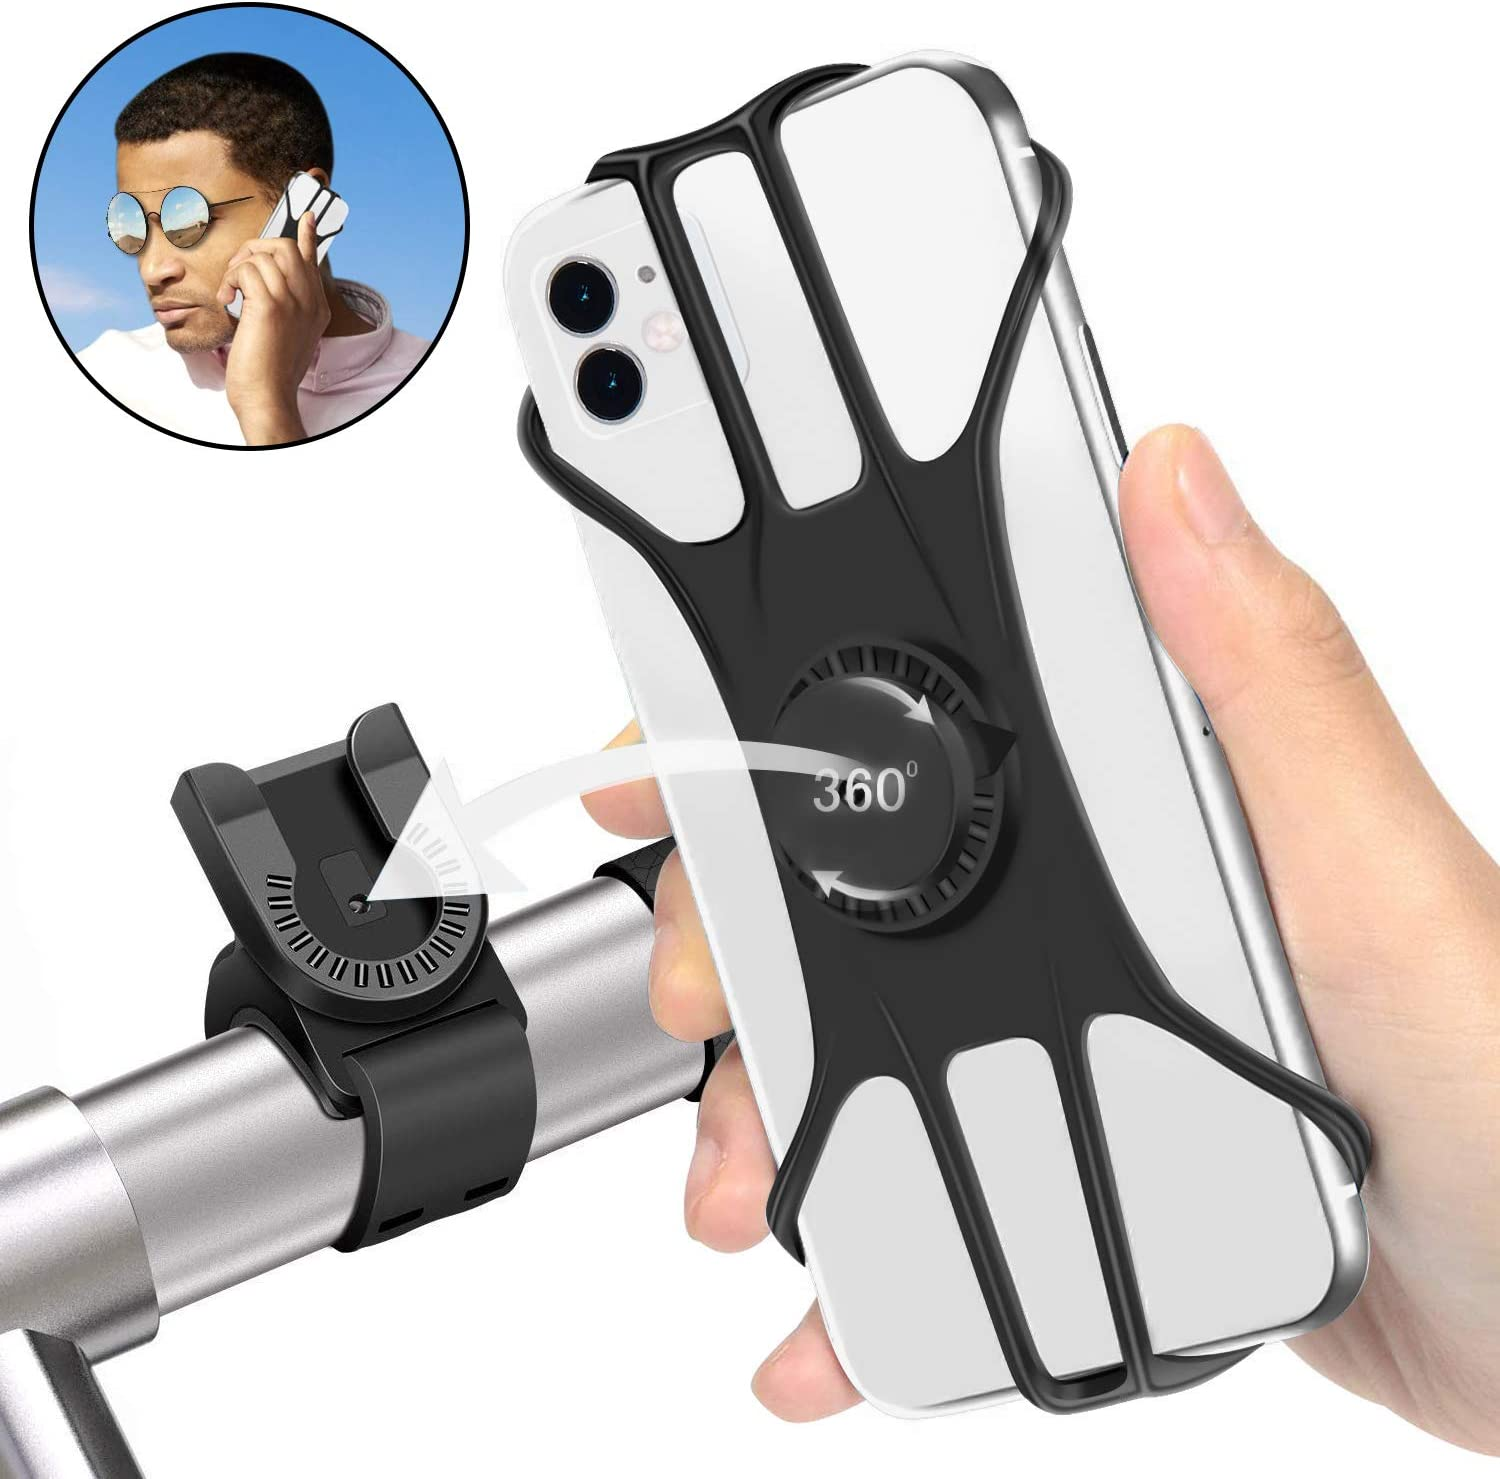 "Shinemefly Bike Phone Mount, 360°Rotation Silicone Bicycle Phone Mount, Universal Upgrade Bike Phone Holder Handlebar Compatible with iPhone 11 Pro Max/8/7/6 Plus, Samsung, Huawei 4.7""-7.5"" Phones"